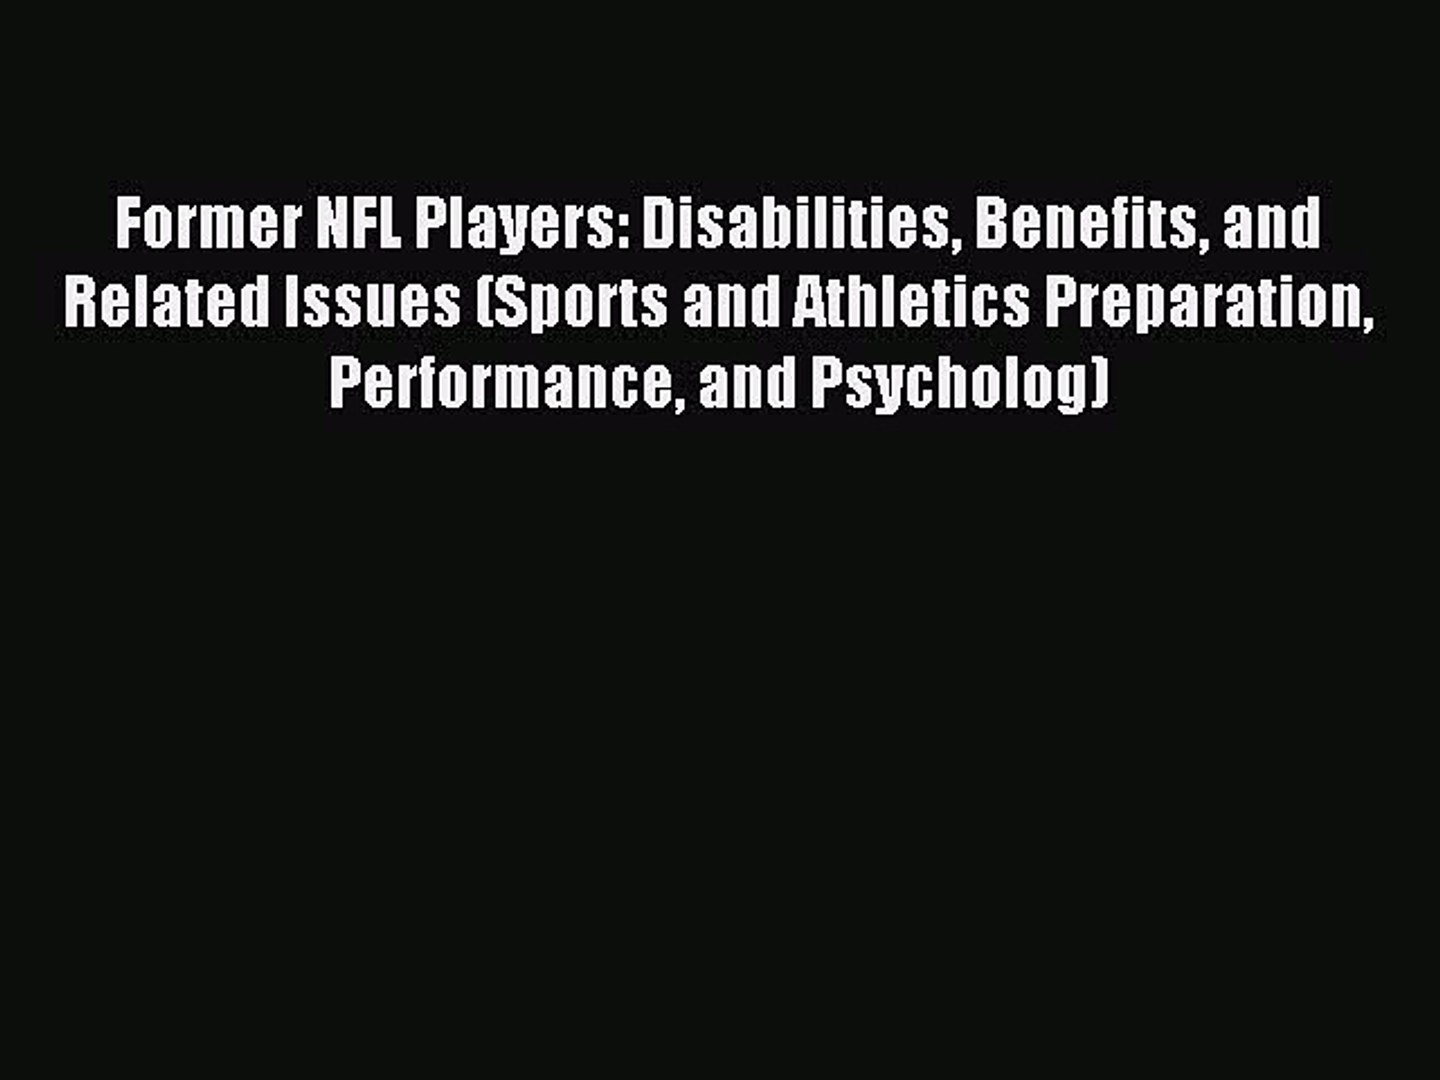 Download Former NFL Players: Disabilities Benefits and Related Issues (Sports and Athletics